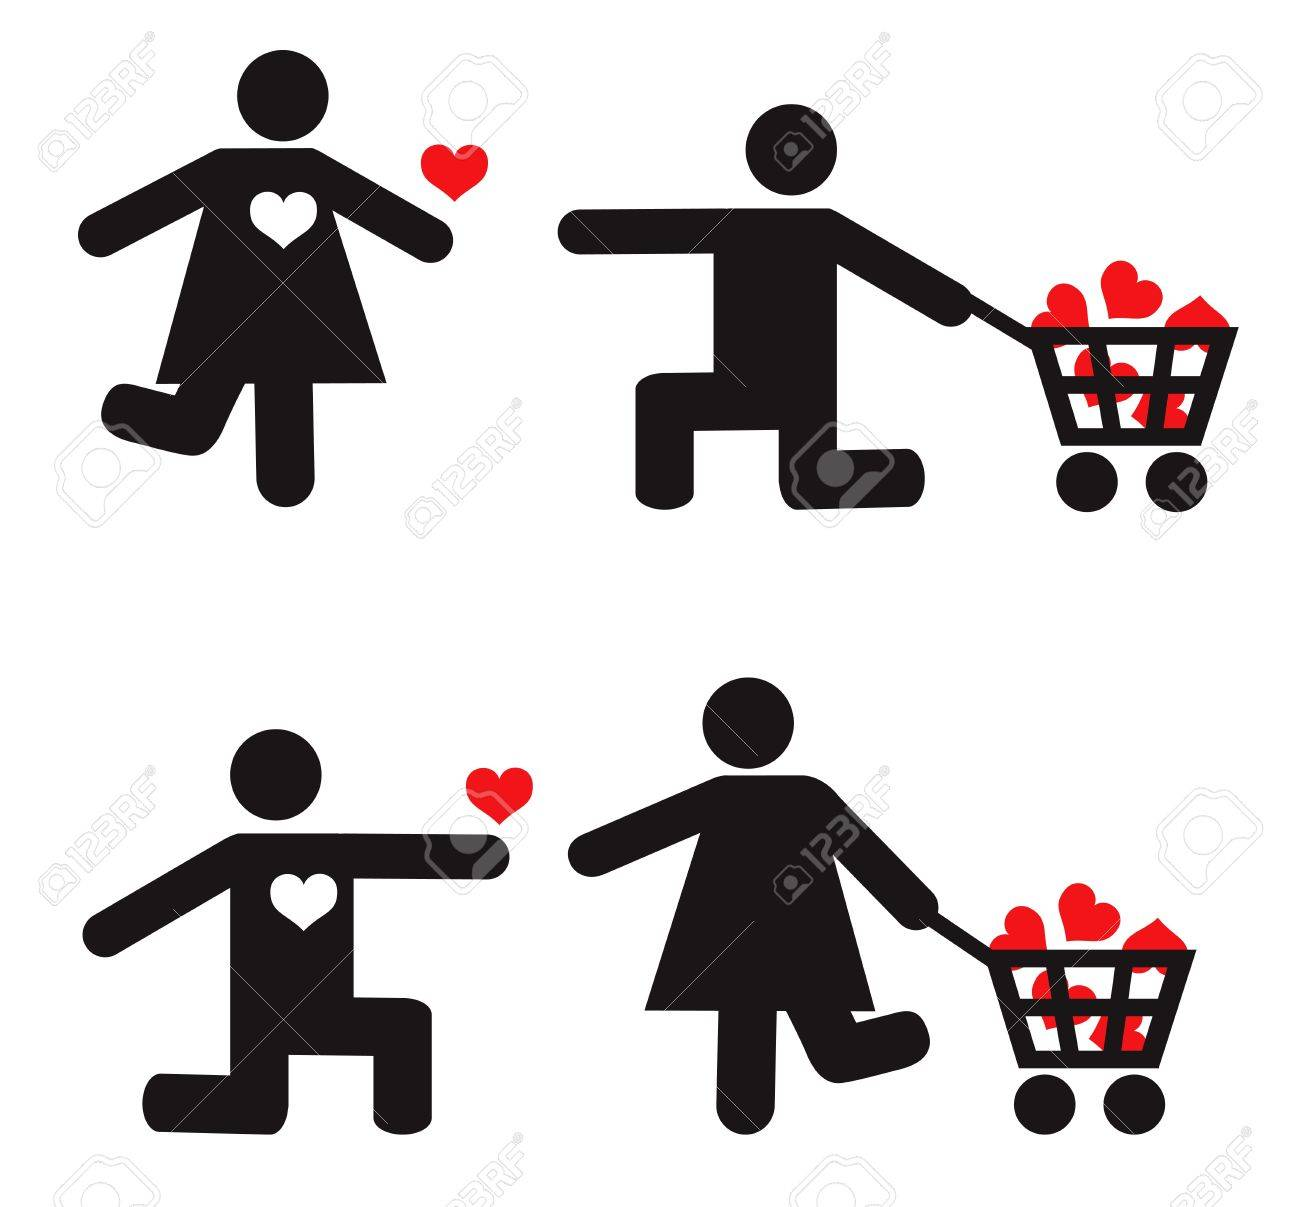 Stylized man and woman vector icons. Love concept Stock Vector - 17830971